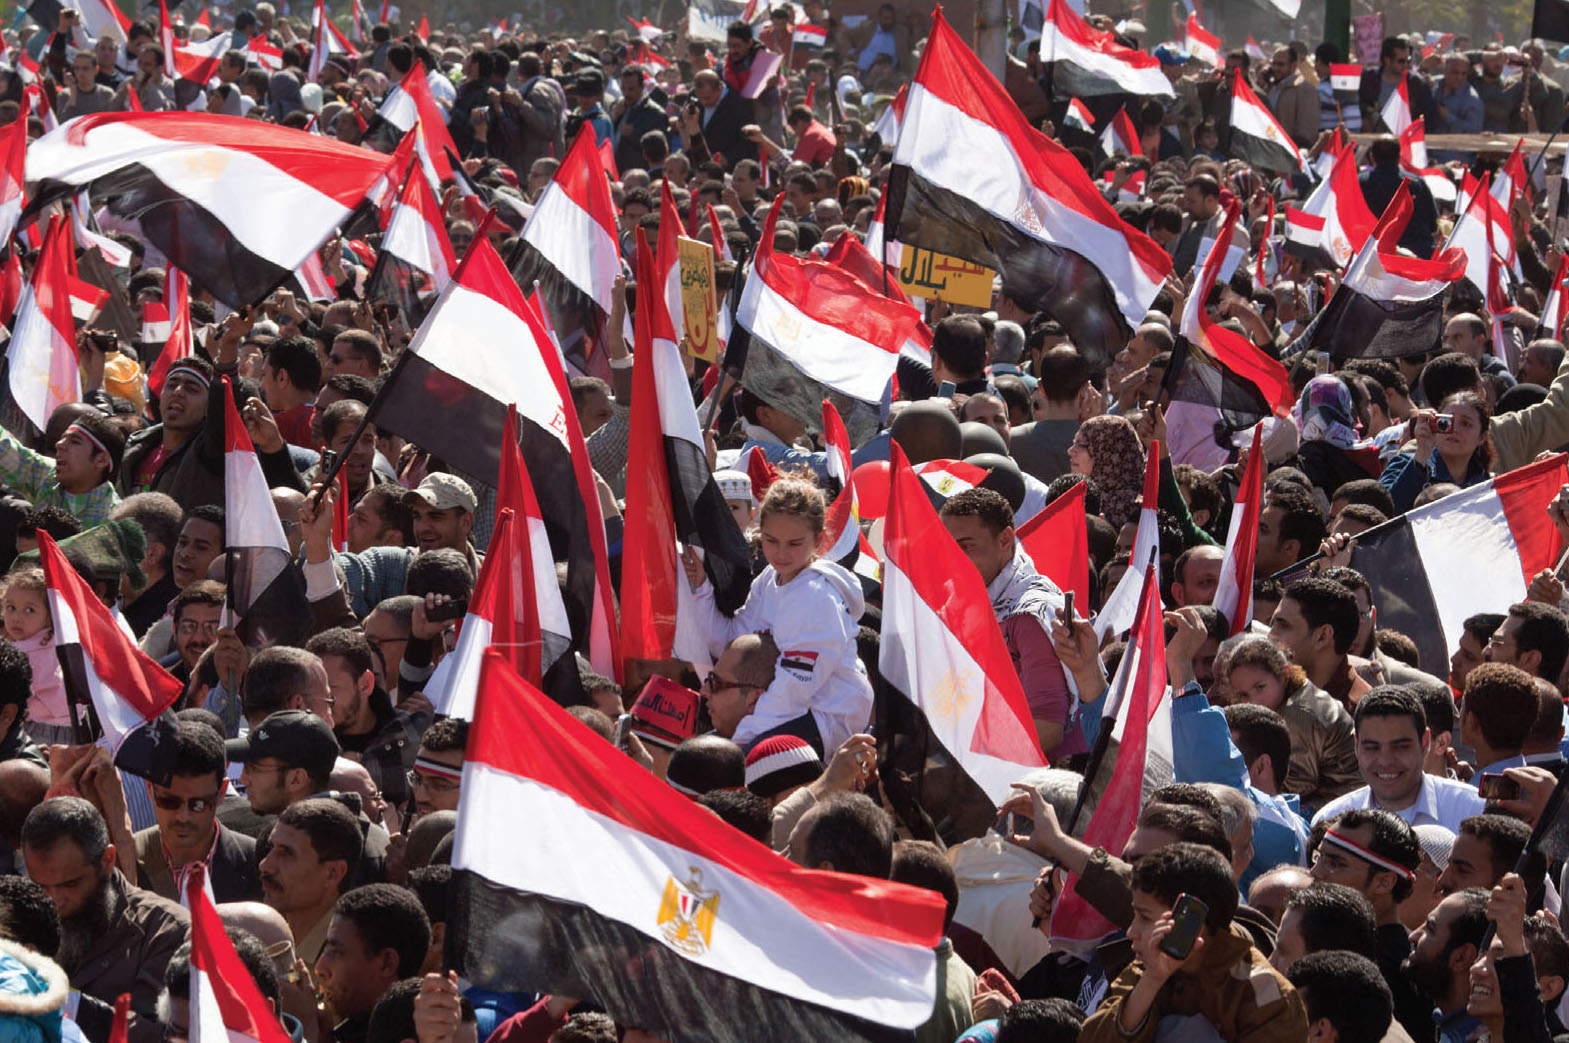 A photograph of a protest in Tahrir Square